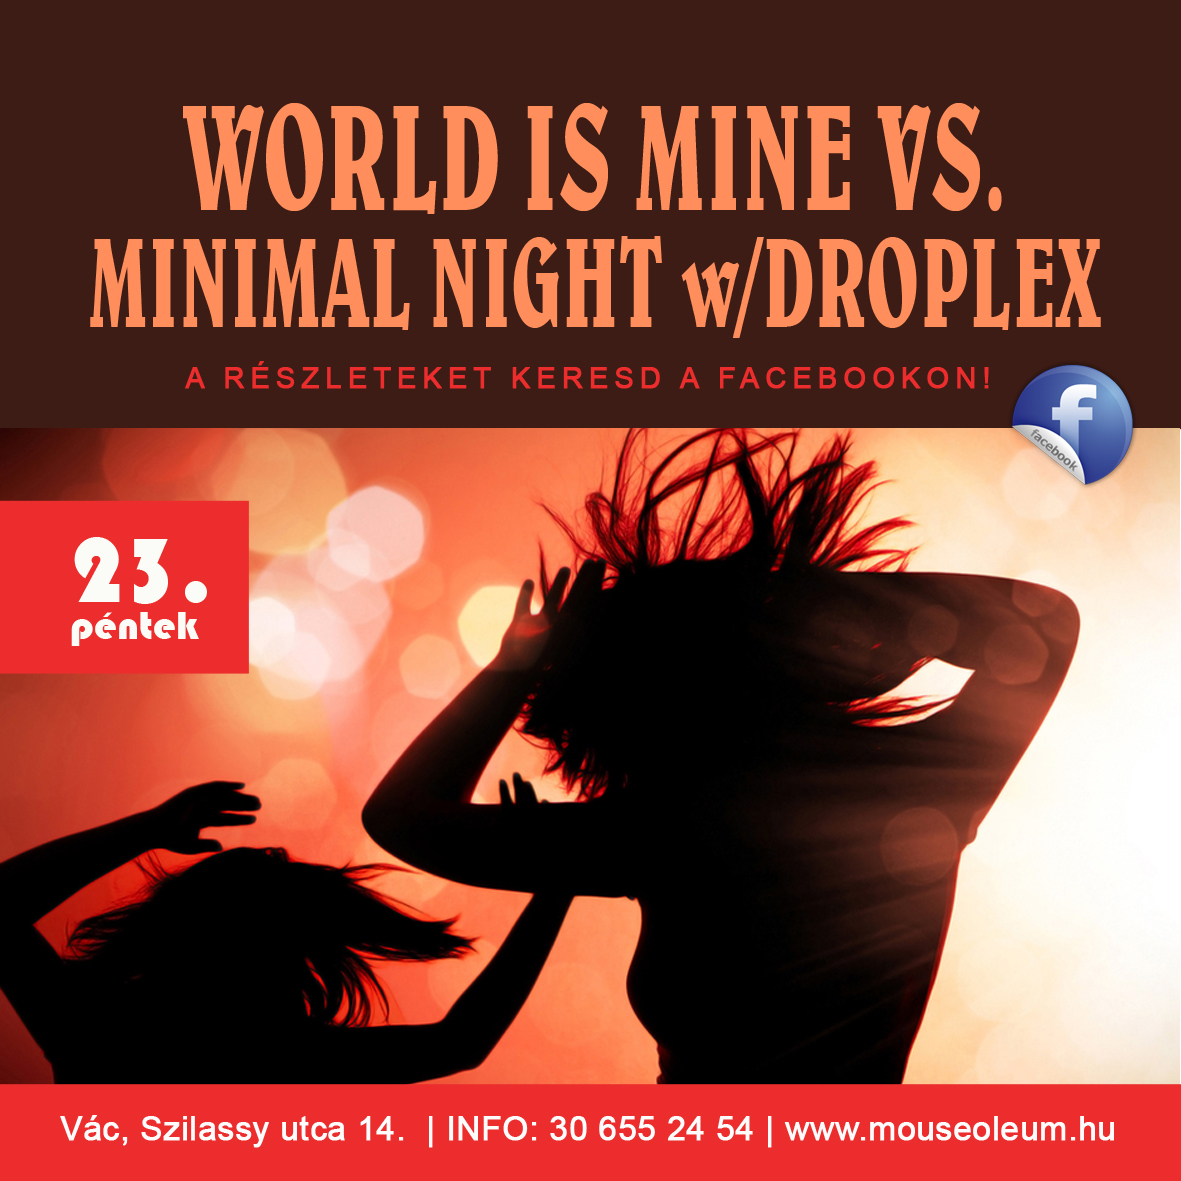 World is Mine vs. Minimal Night w/Droplex